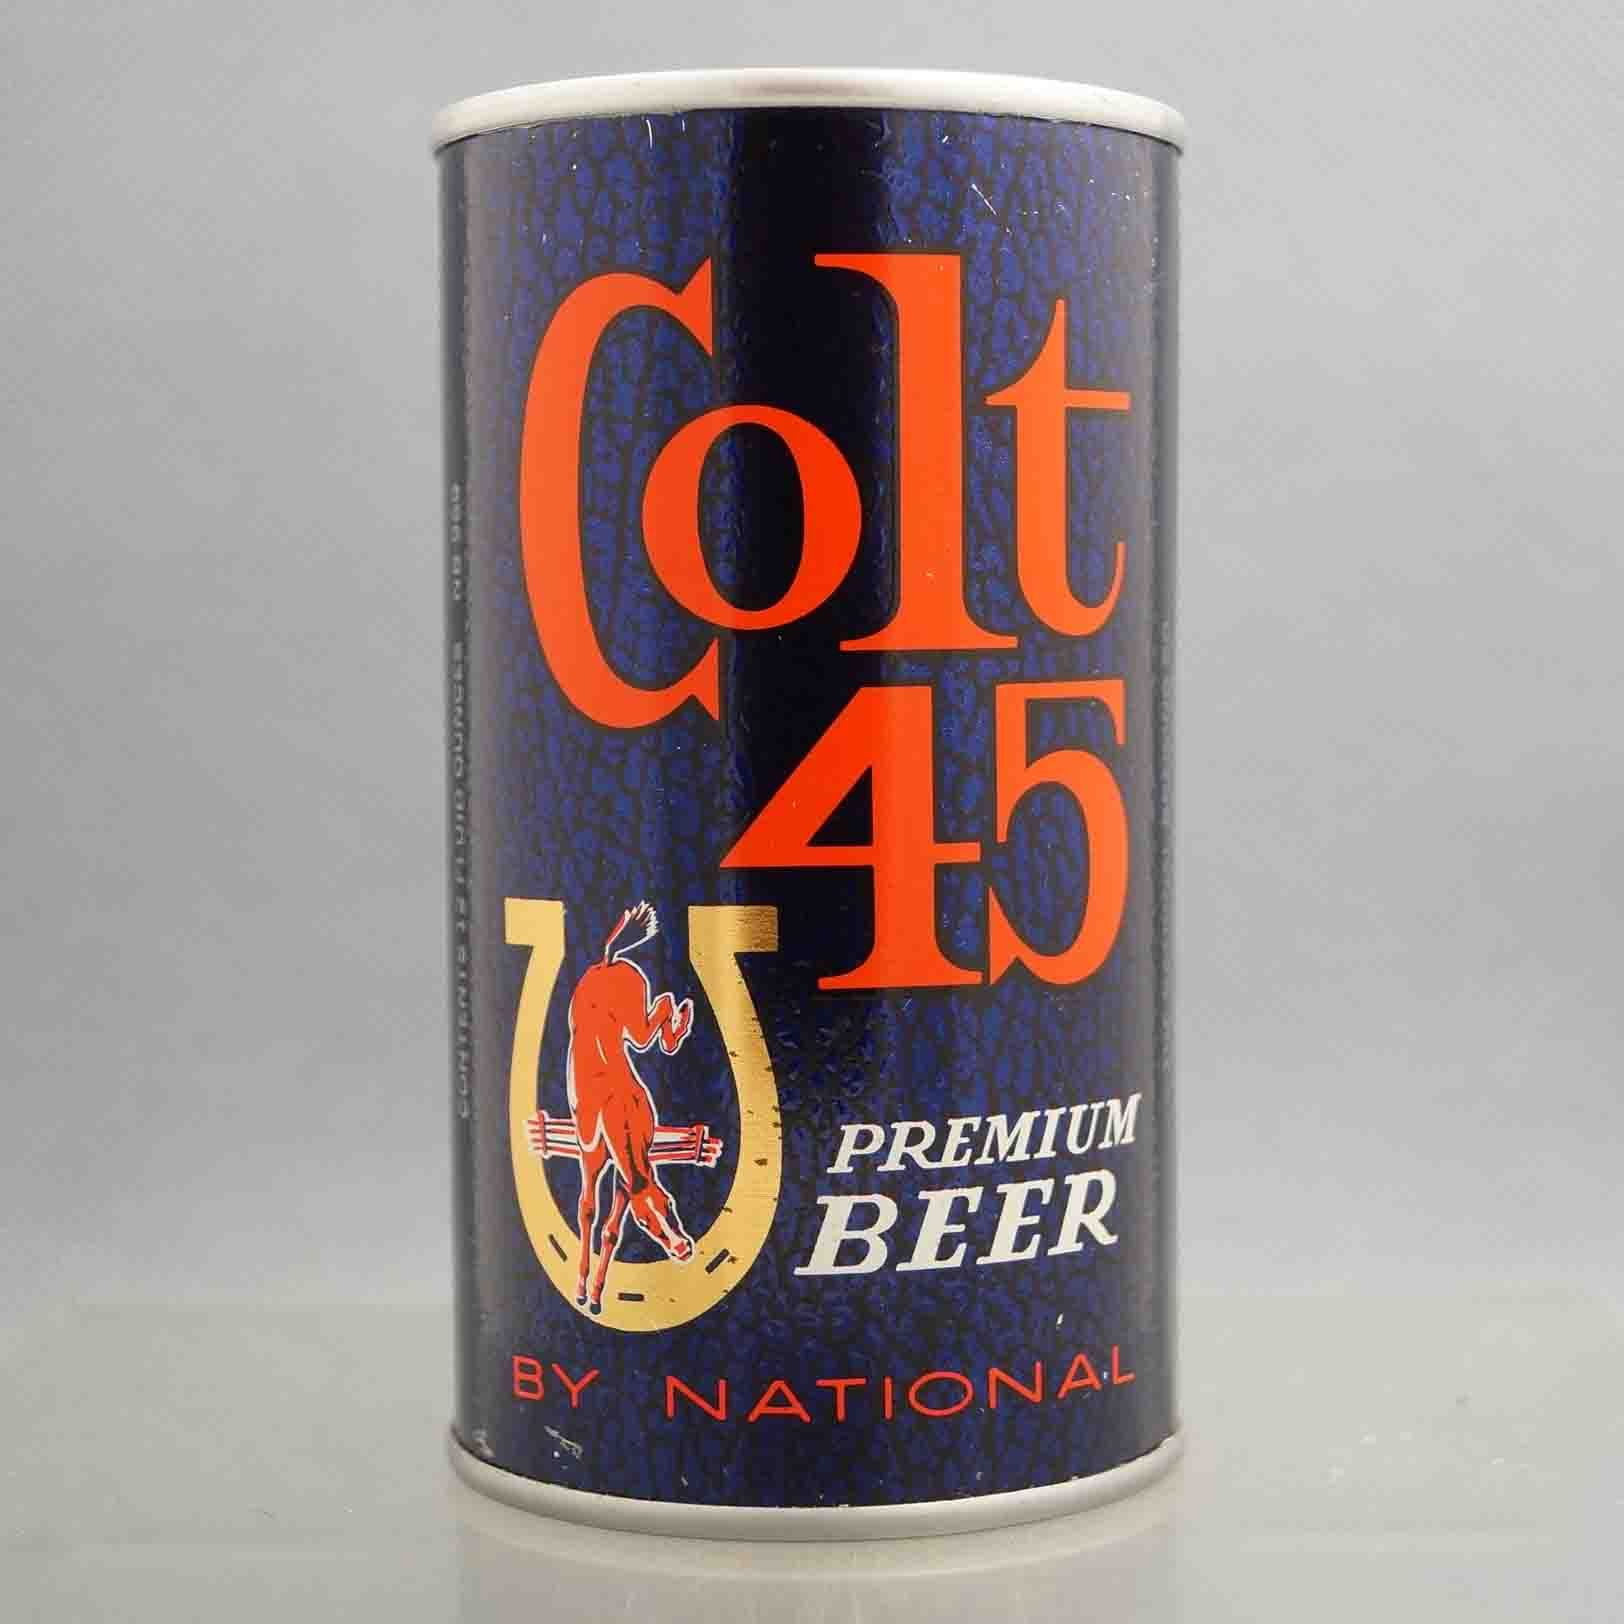 Colt 45 Beer / Textured snake skin finish ( Rolled , test can ) , Baltimore, MD